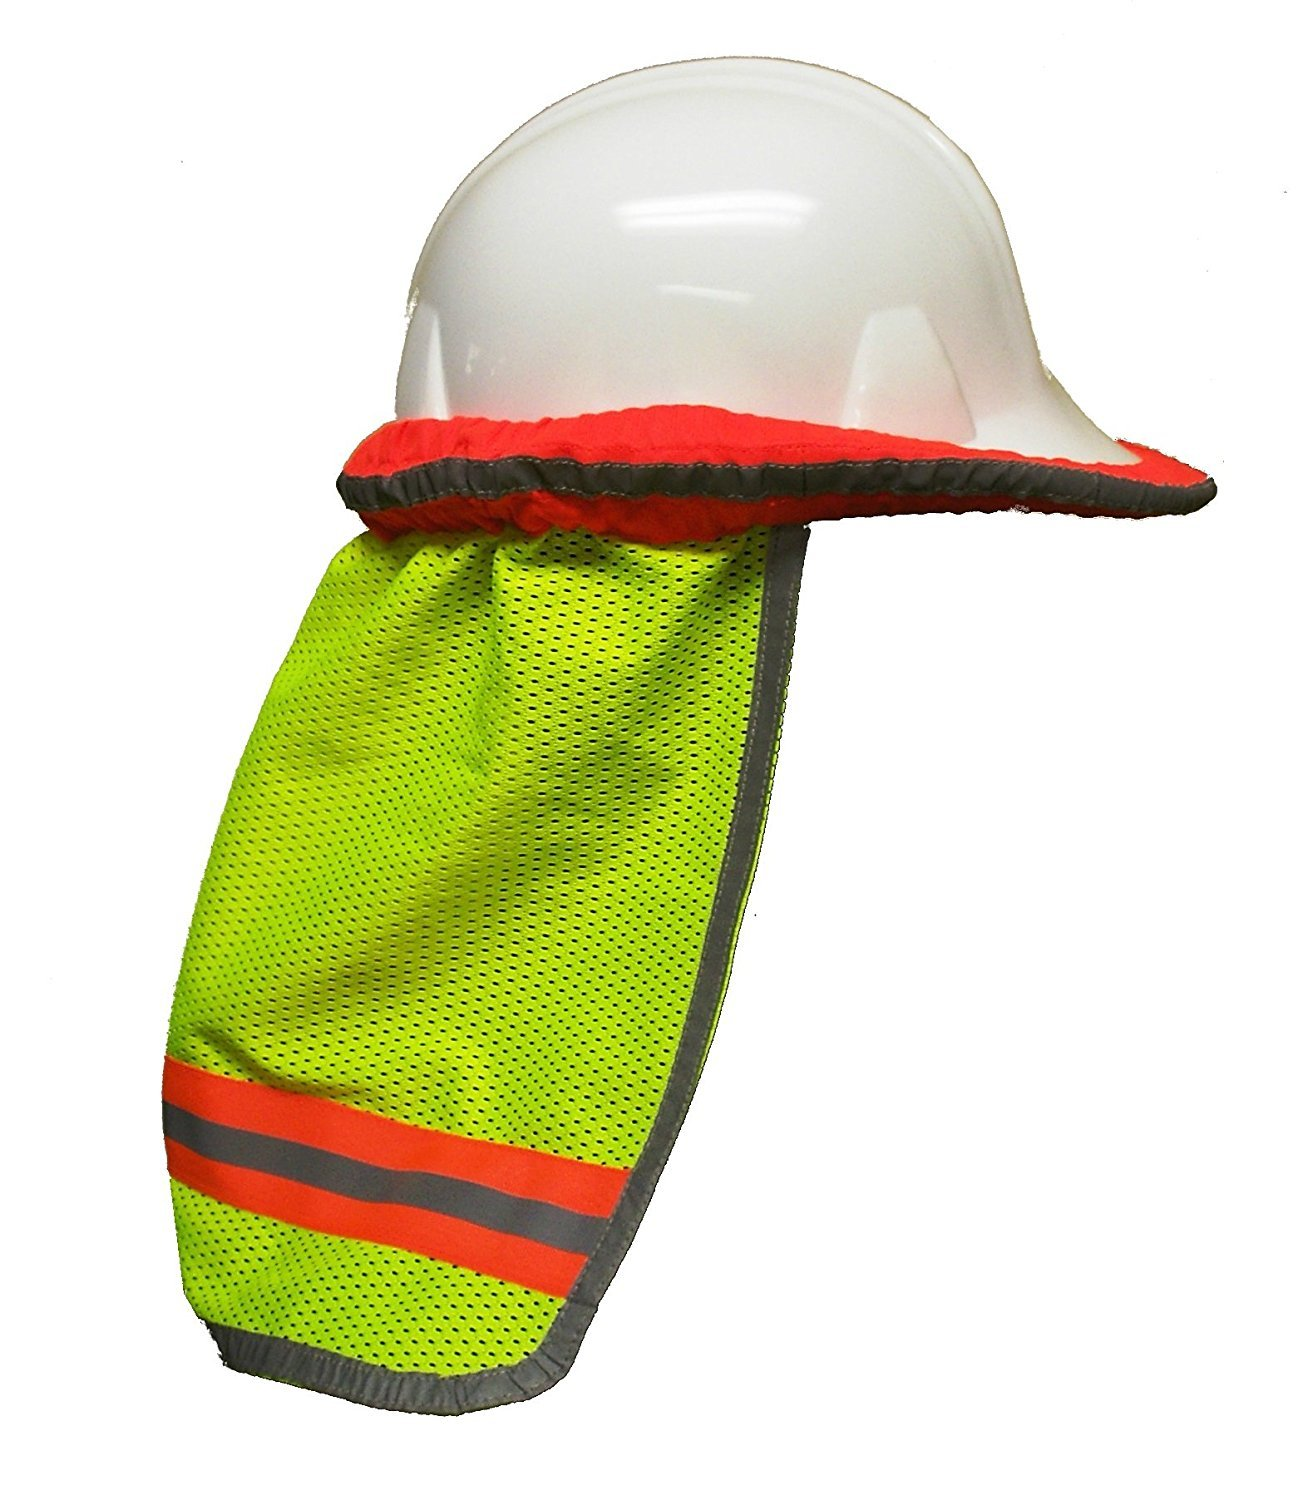 Safety Depot High Visibility Reflective Hard Hat Neck Sun Shade Meets ANSI & NFPA 701 (2010) Standards (Case of 48 Lime, Mesh)